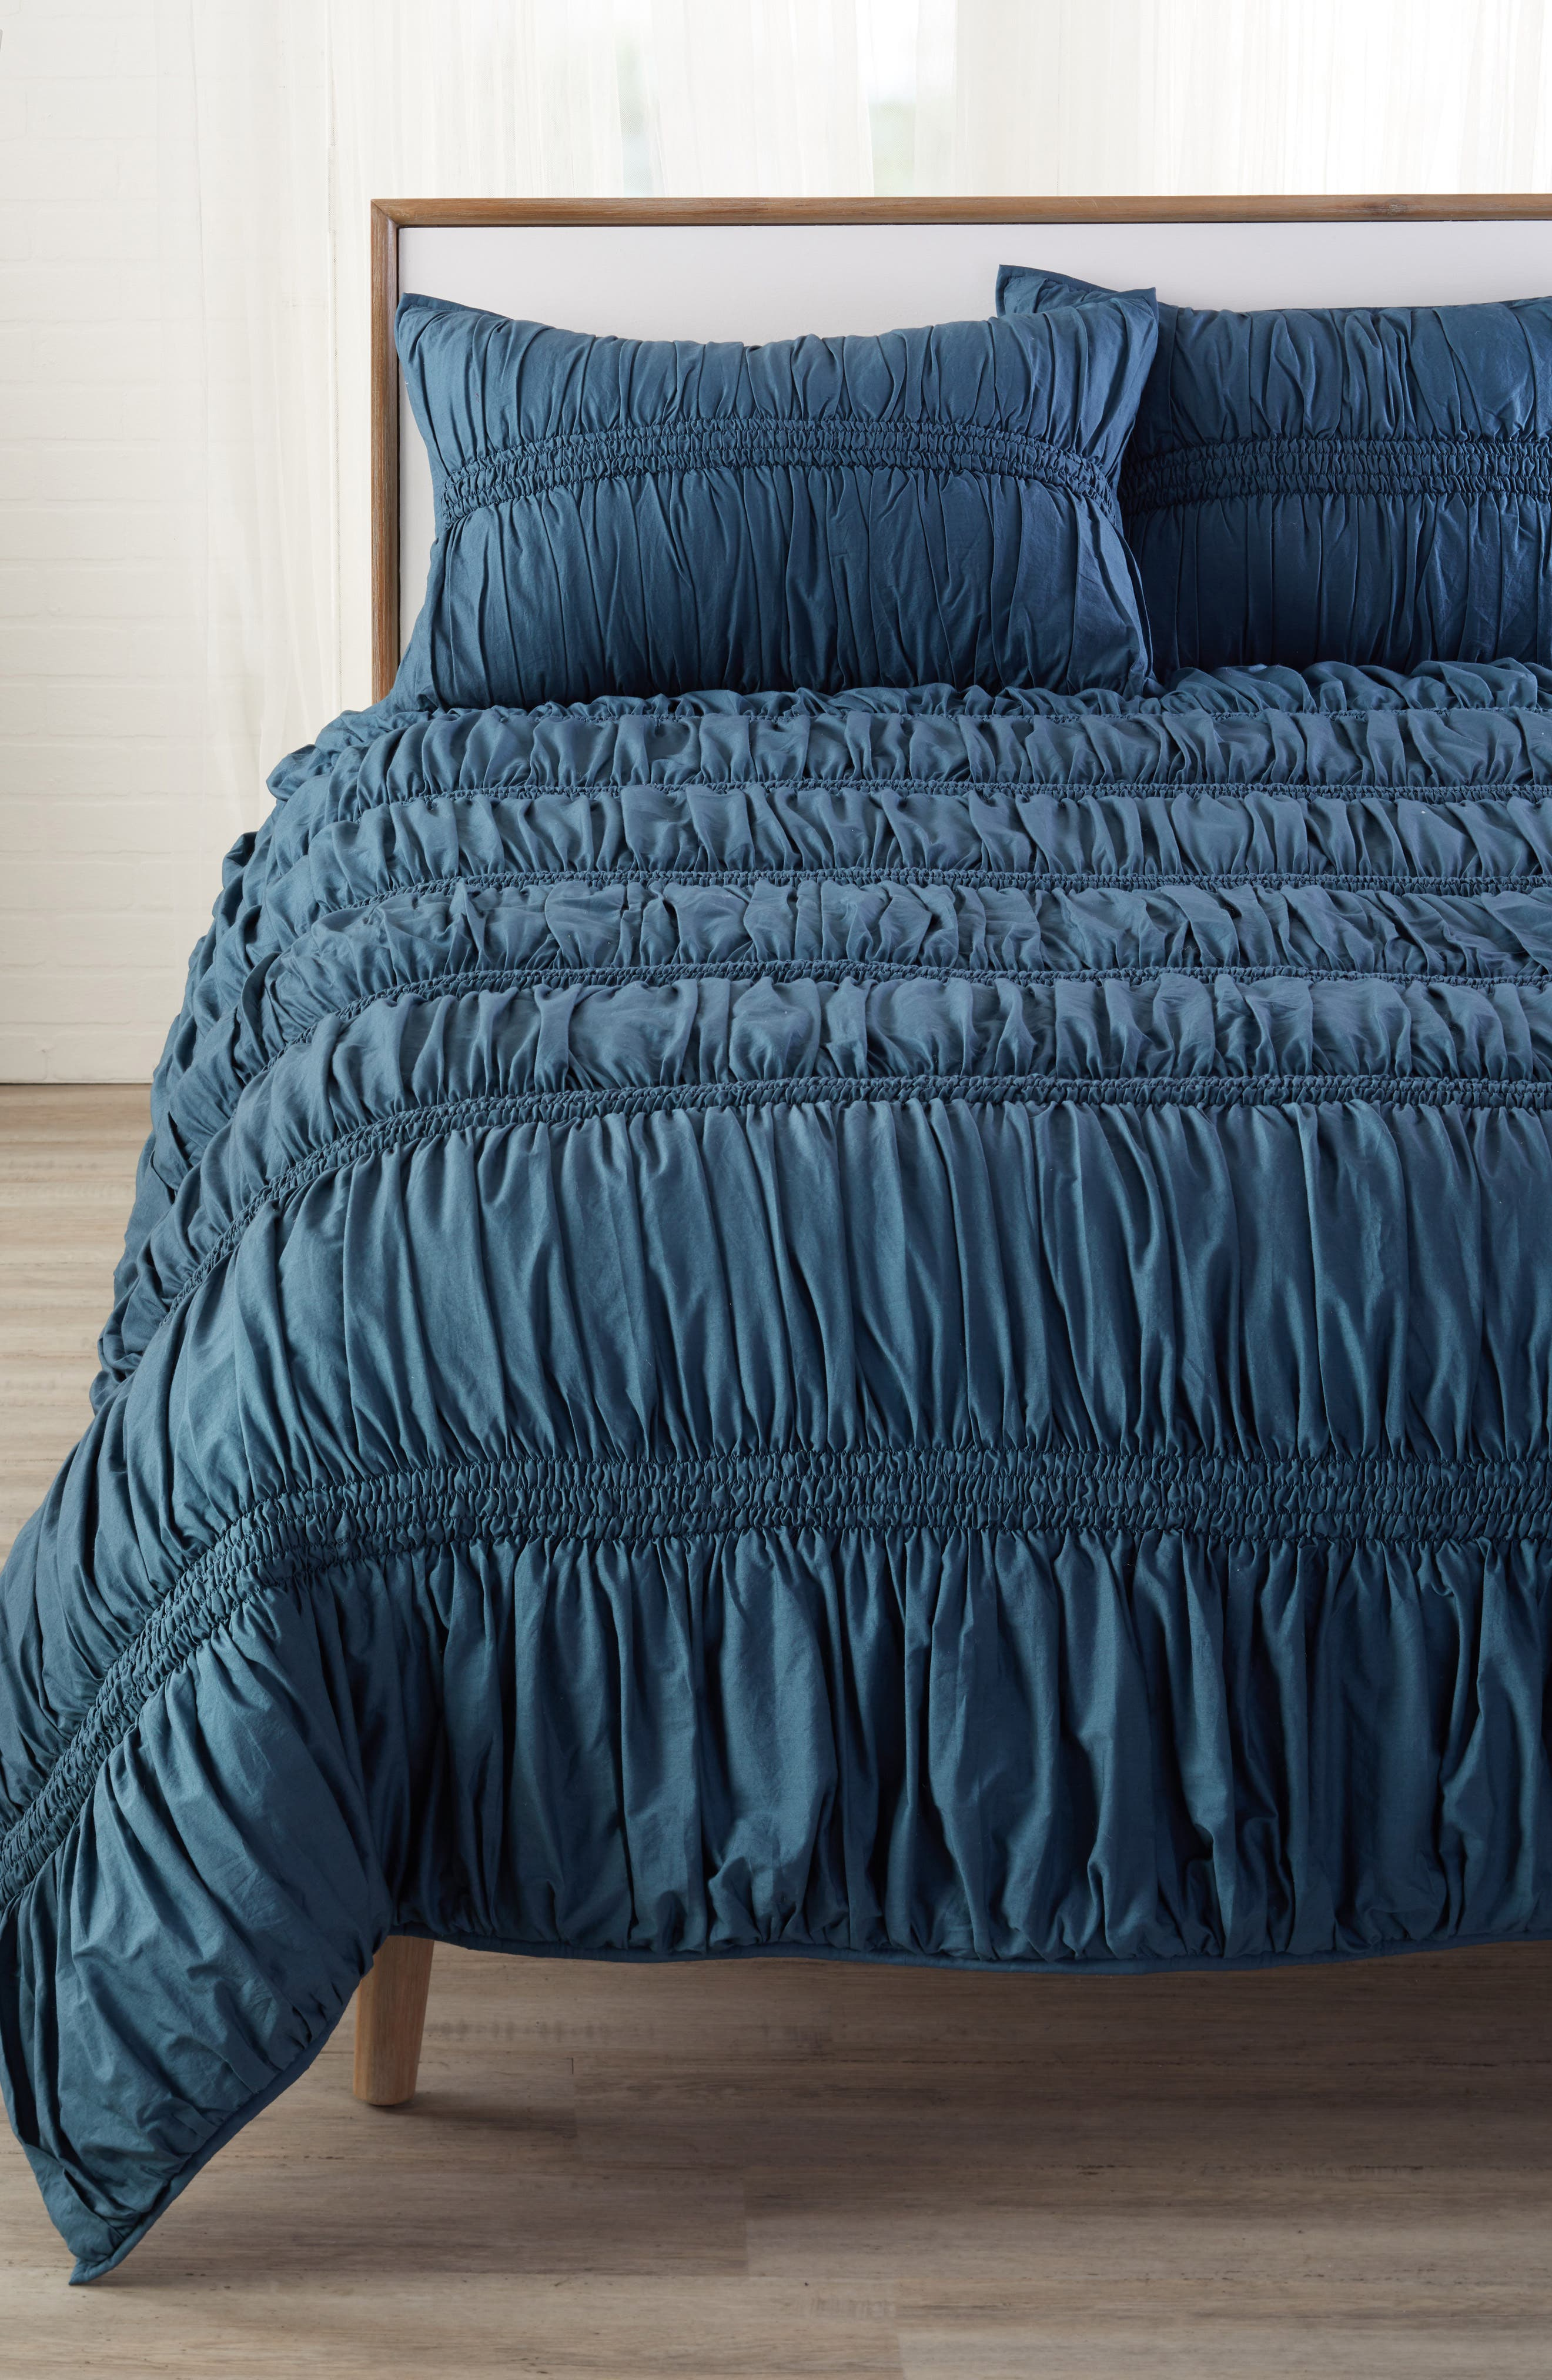 Solid Ruched Comforter,                             Main thumbnail 1, color,                             TEAL GAZER